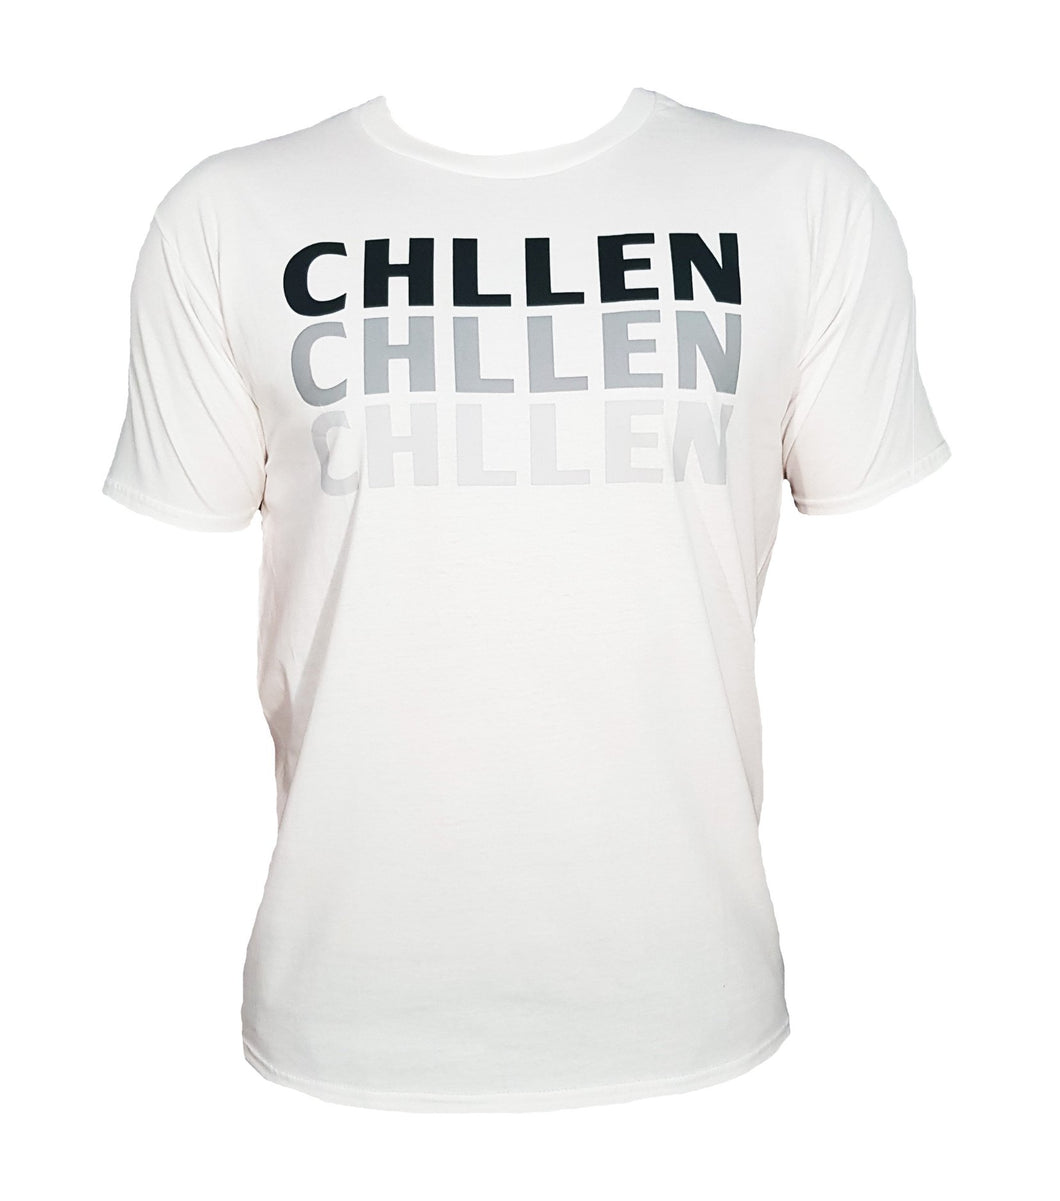 chillen chllen lifestyle wear casual white-grey shirt t-shirt tee